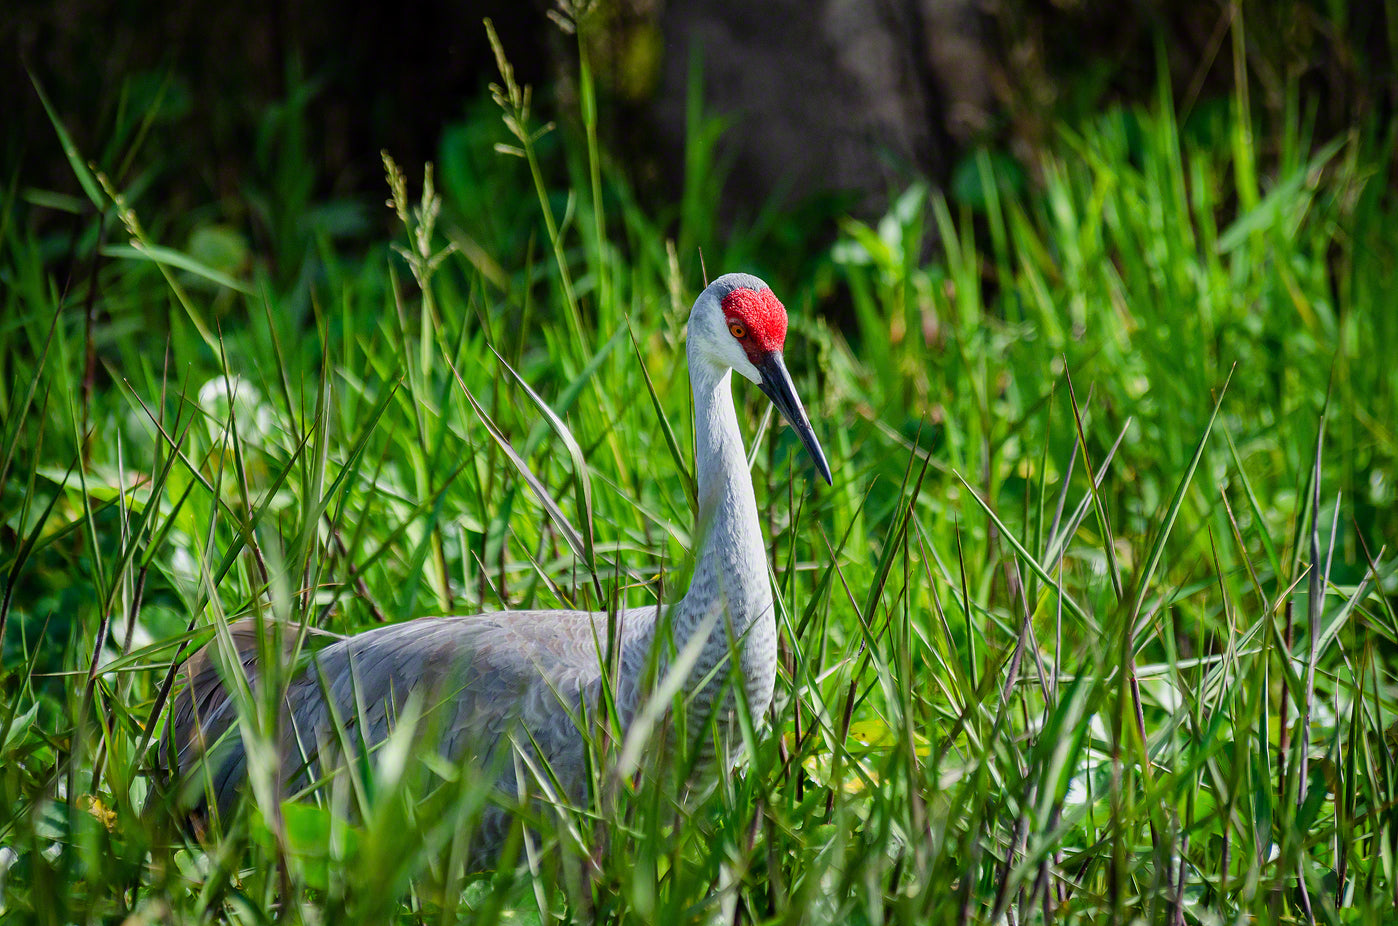 A photograph of a Sandhill Crane in the marsh